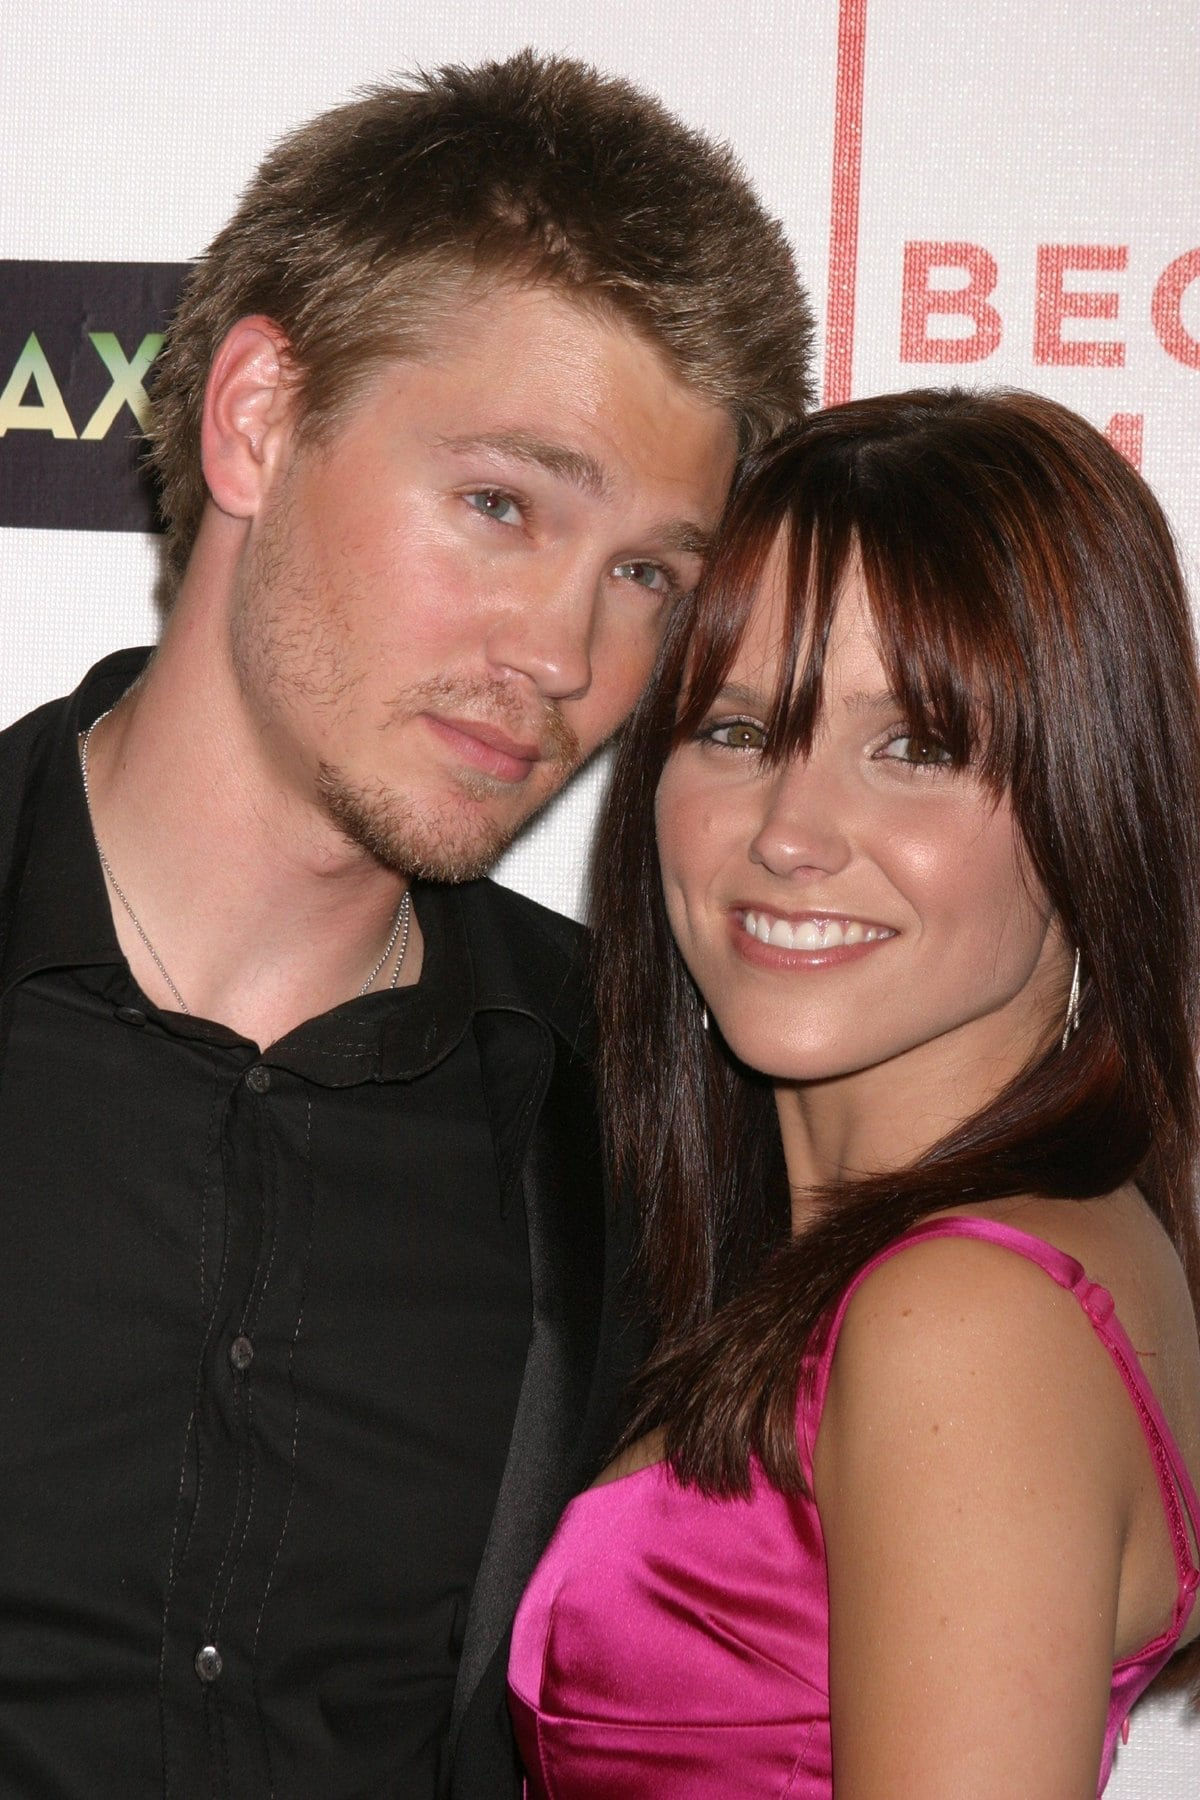 Sophia Bush filed to annul her five-month marriage to Chad Michael Murray citing fraud as the grounds for annulling the union